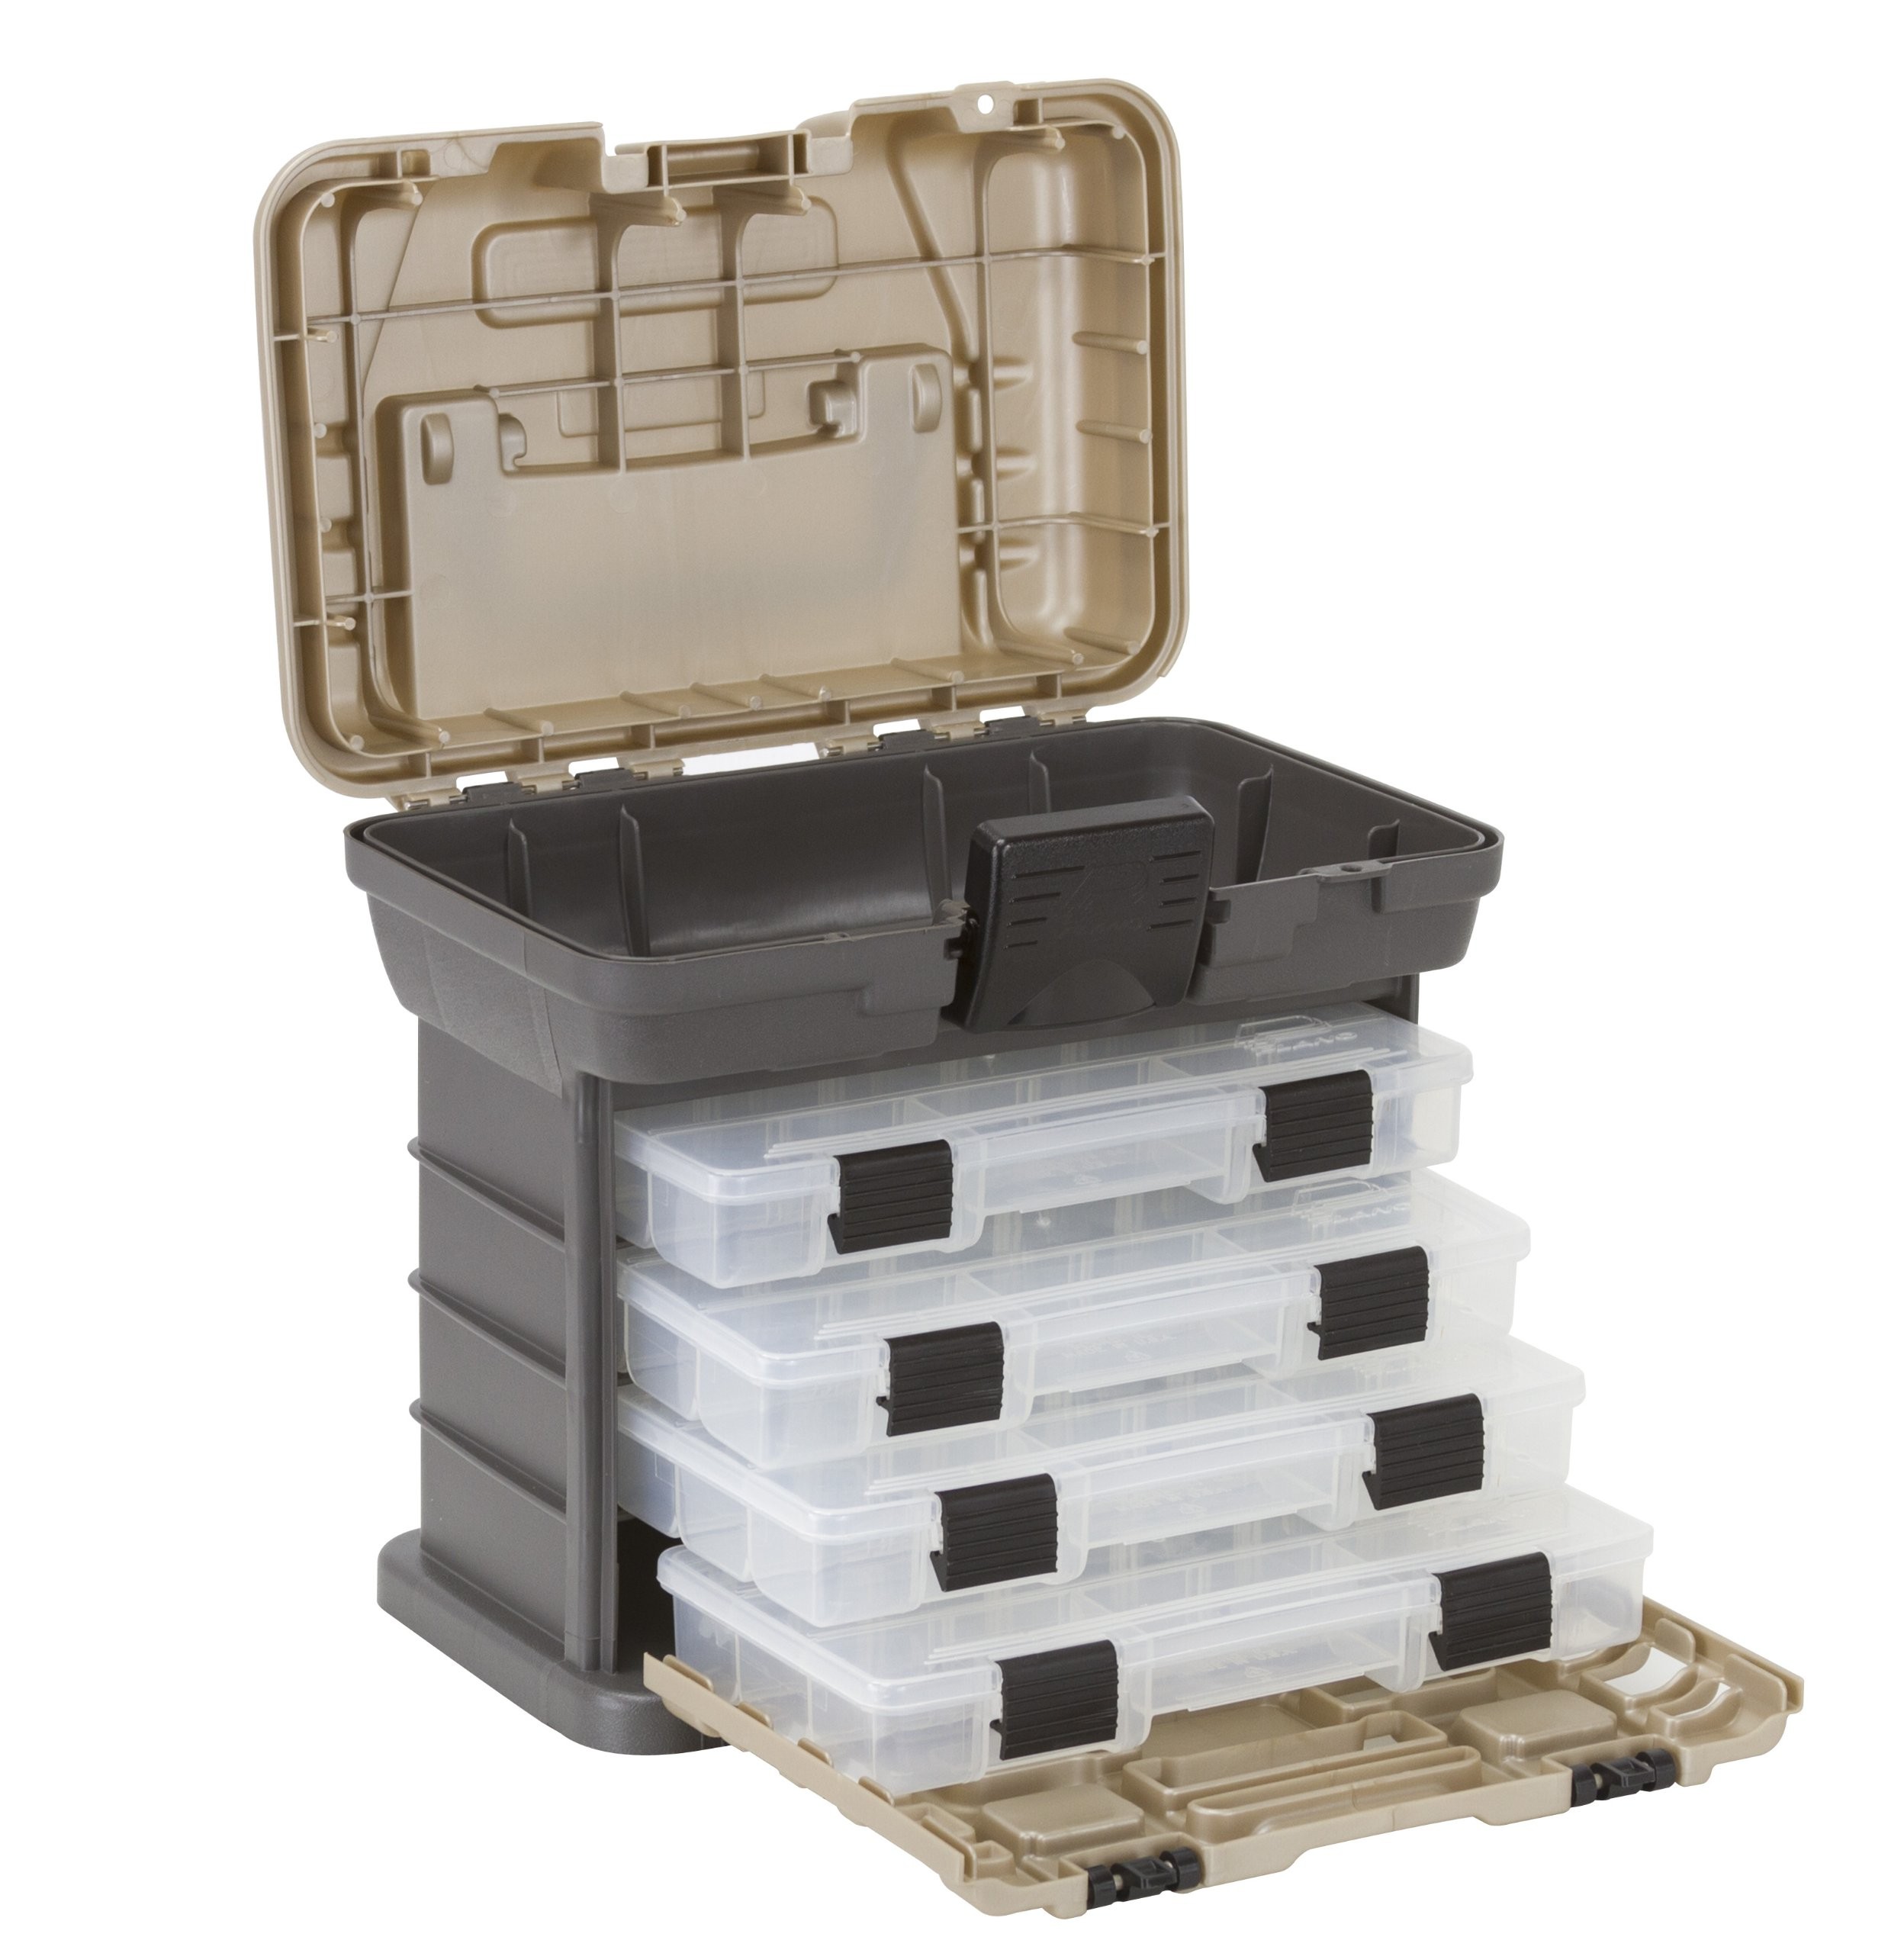 Plano Molding 1354 Stow N Go Tool Box with 4 23500 Series StowAways, Graphite Gray and Sandstone by Plano Molding